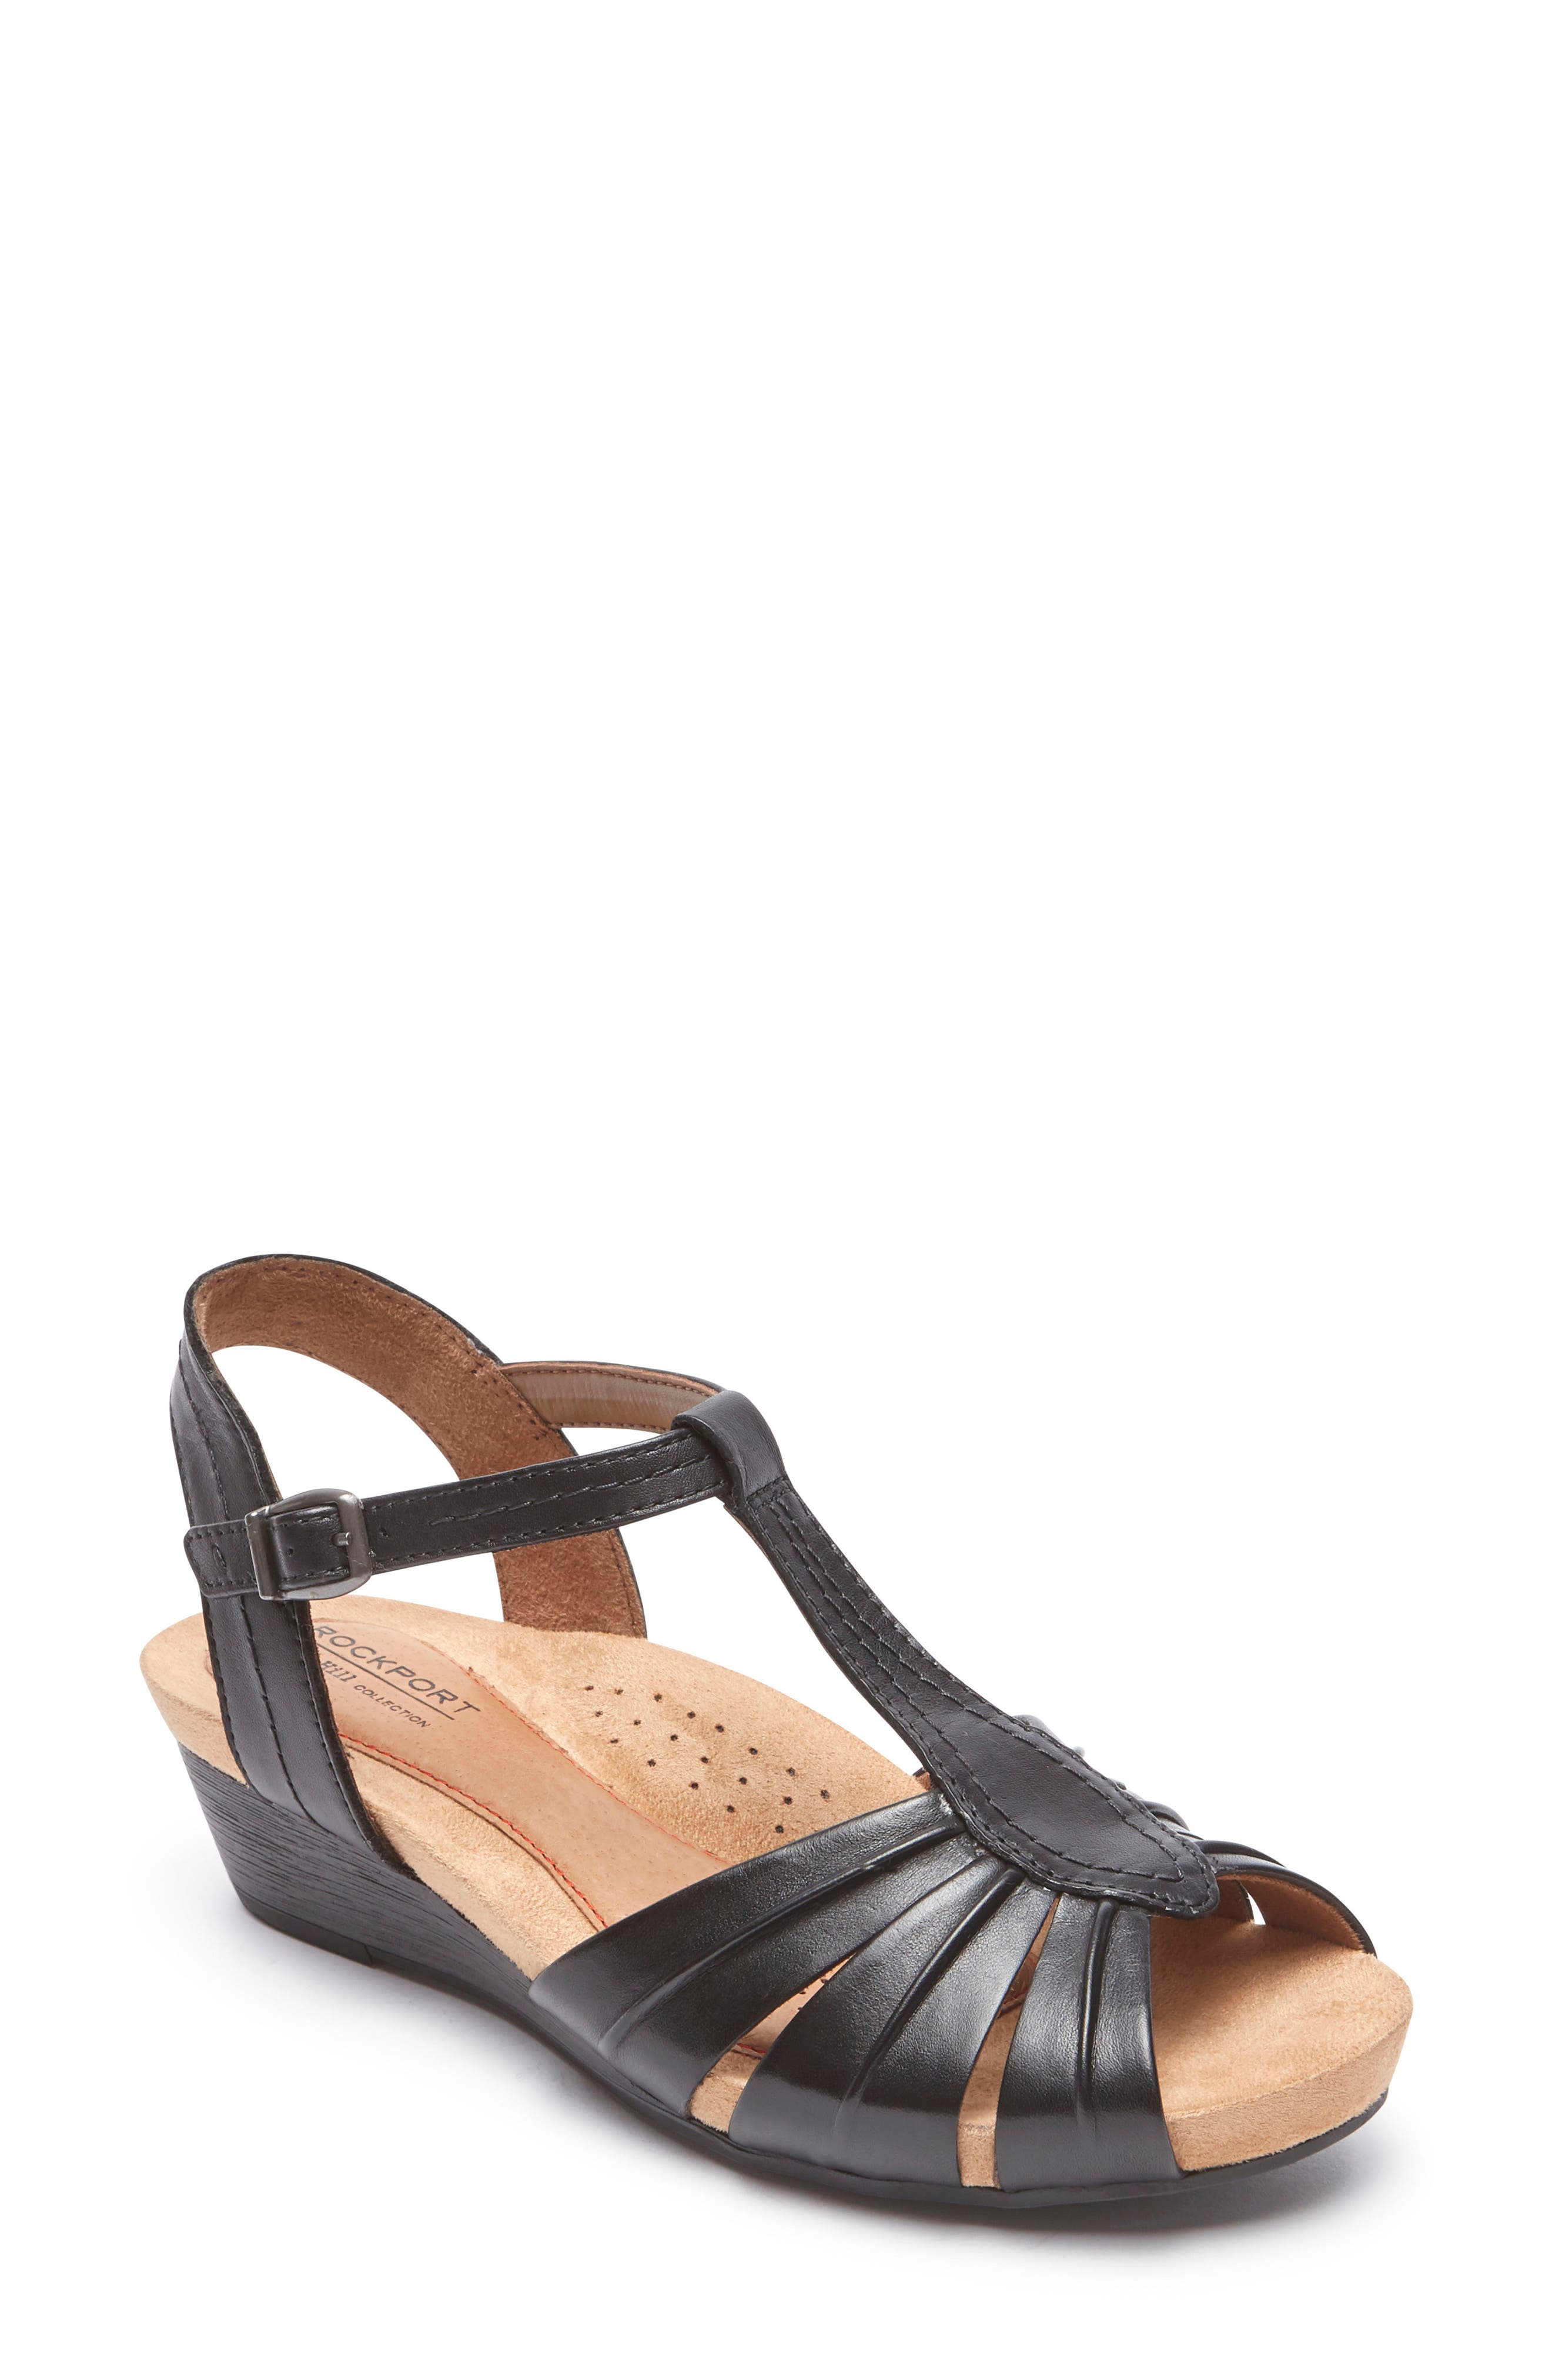 Hollywood Pleat Wedge Sandal,                             Main thumbnail 1, color,                             Black Leather